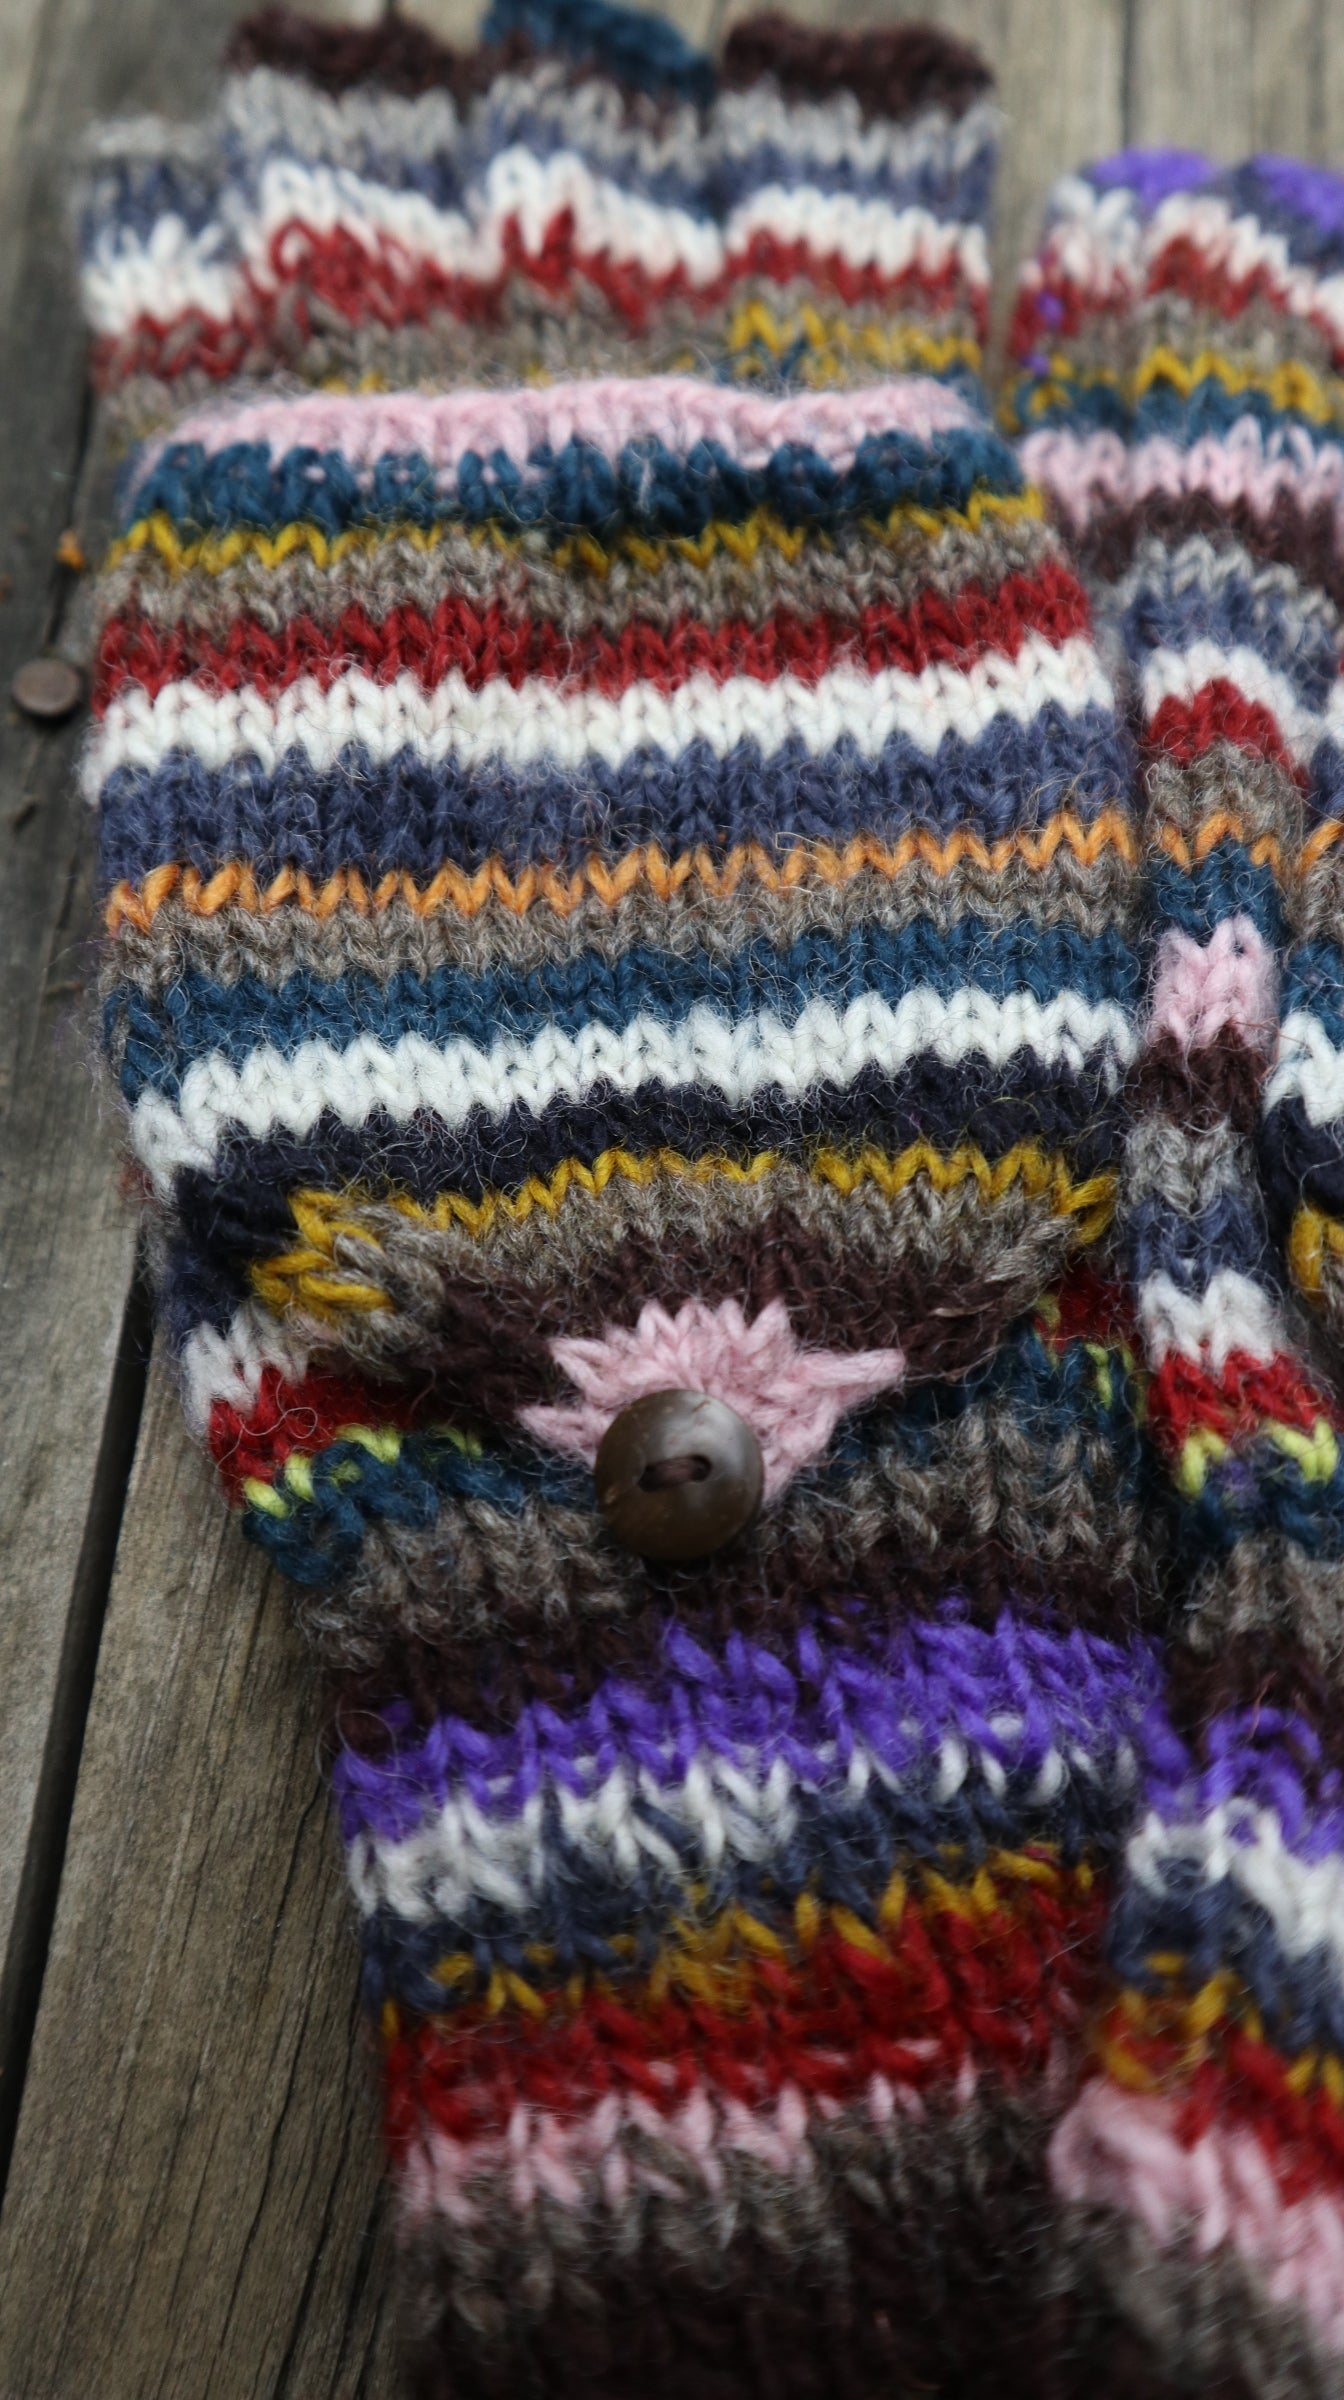 Fair Trade Ethical Adult Fingerless Gloves with Cap in Striped Brown Designs